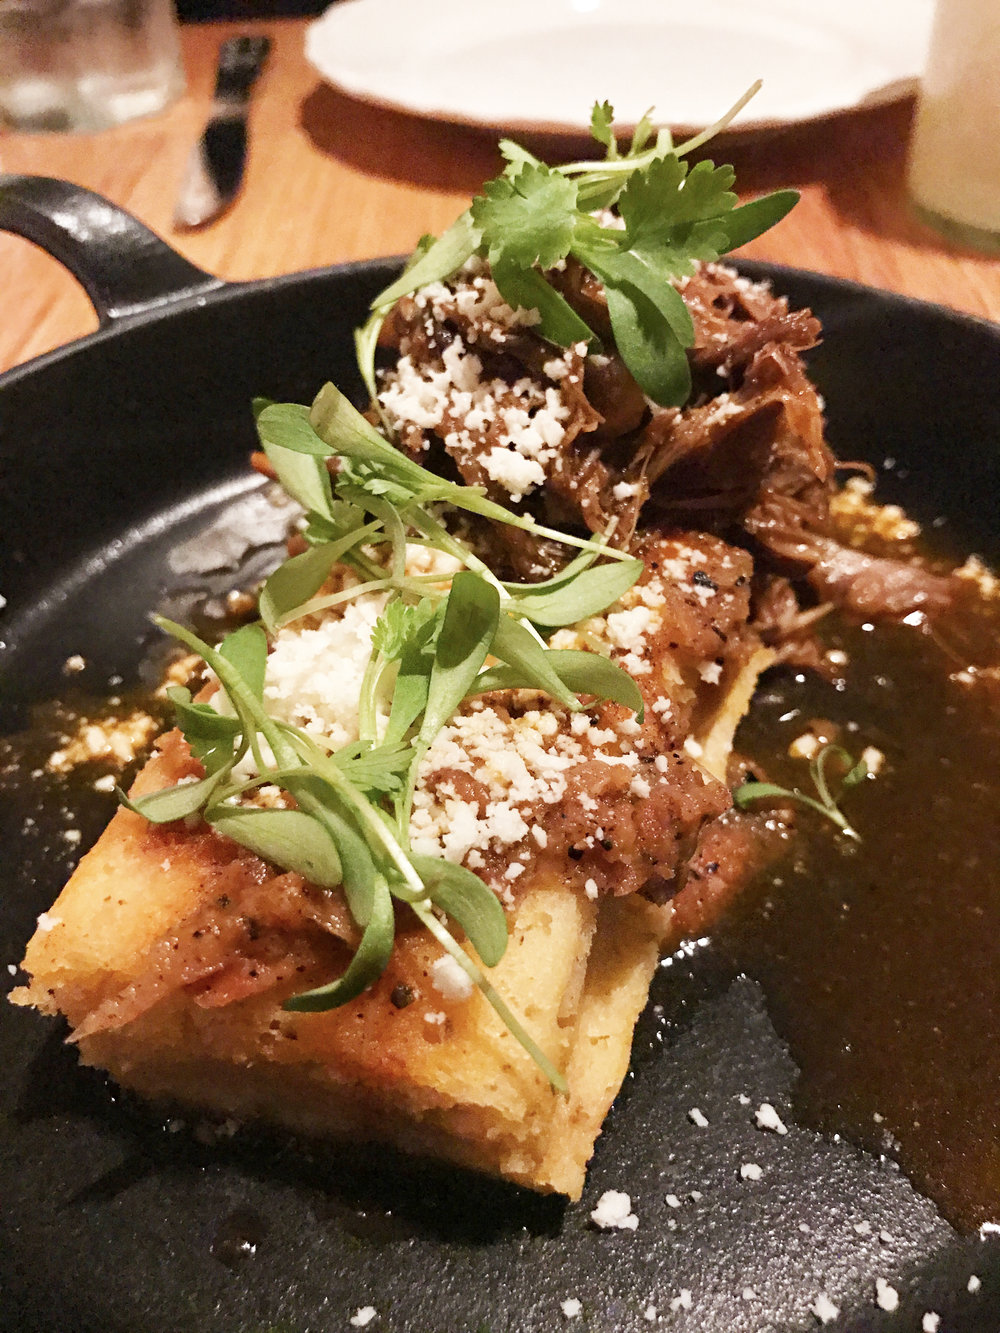 Tamale with lamb neck, king oyster mushrooms, and queso oaxaca